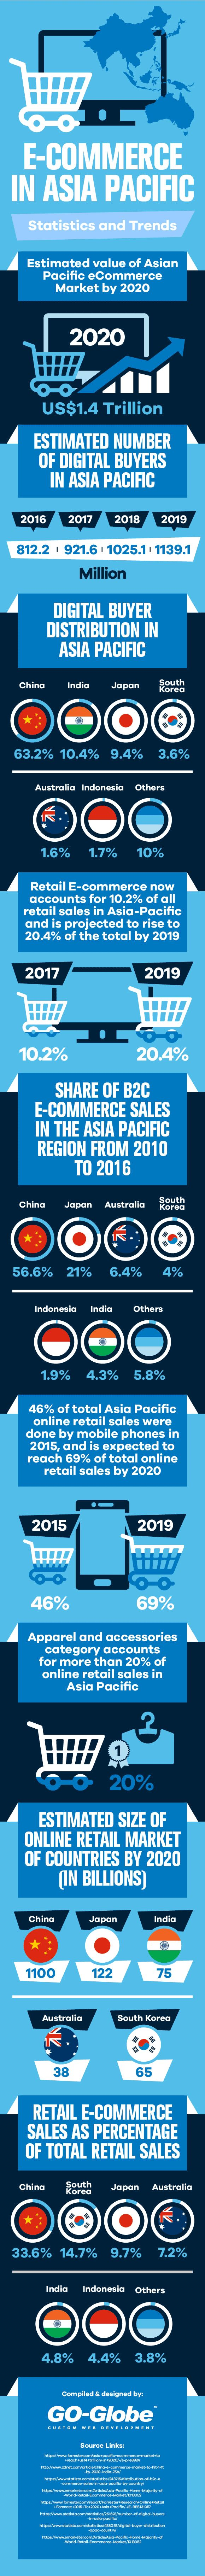 View mobile site about digitalbuyer com affiliate program site map - Check Out Our Infographic On E Commerce In Asia Pacific For Latest Statistics And Trends Including Number Of Digital Buyers In Asia Pacific Digital Buyer